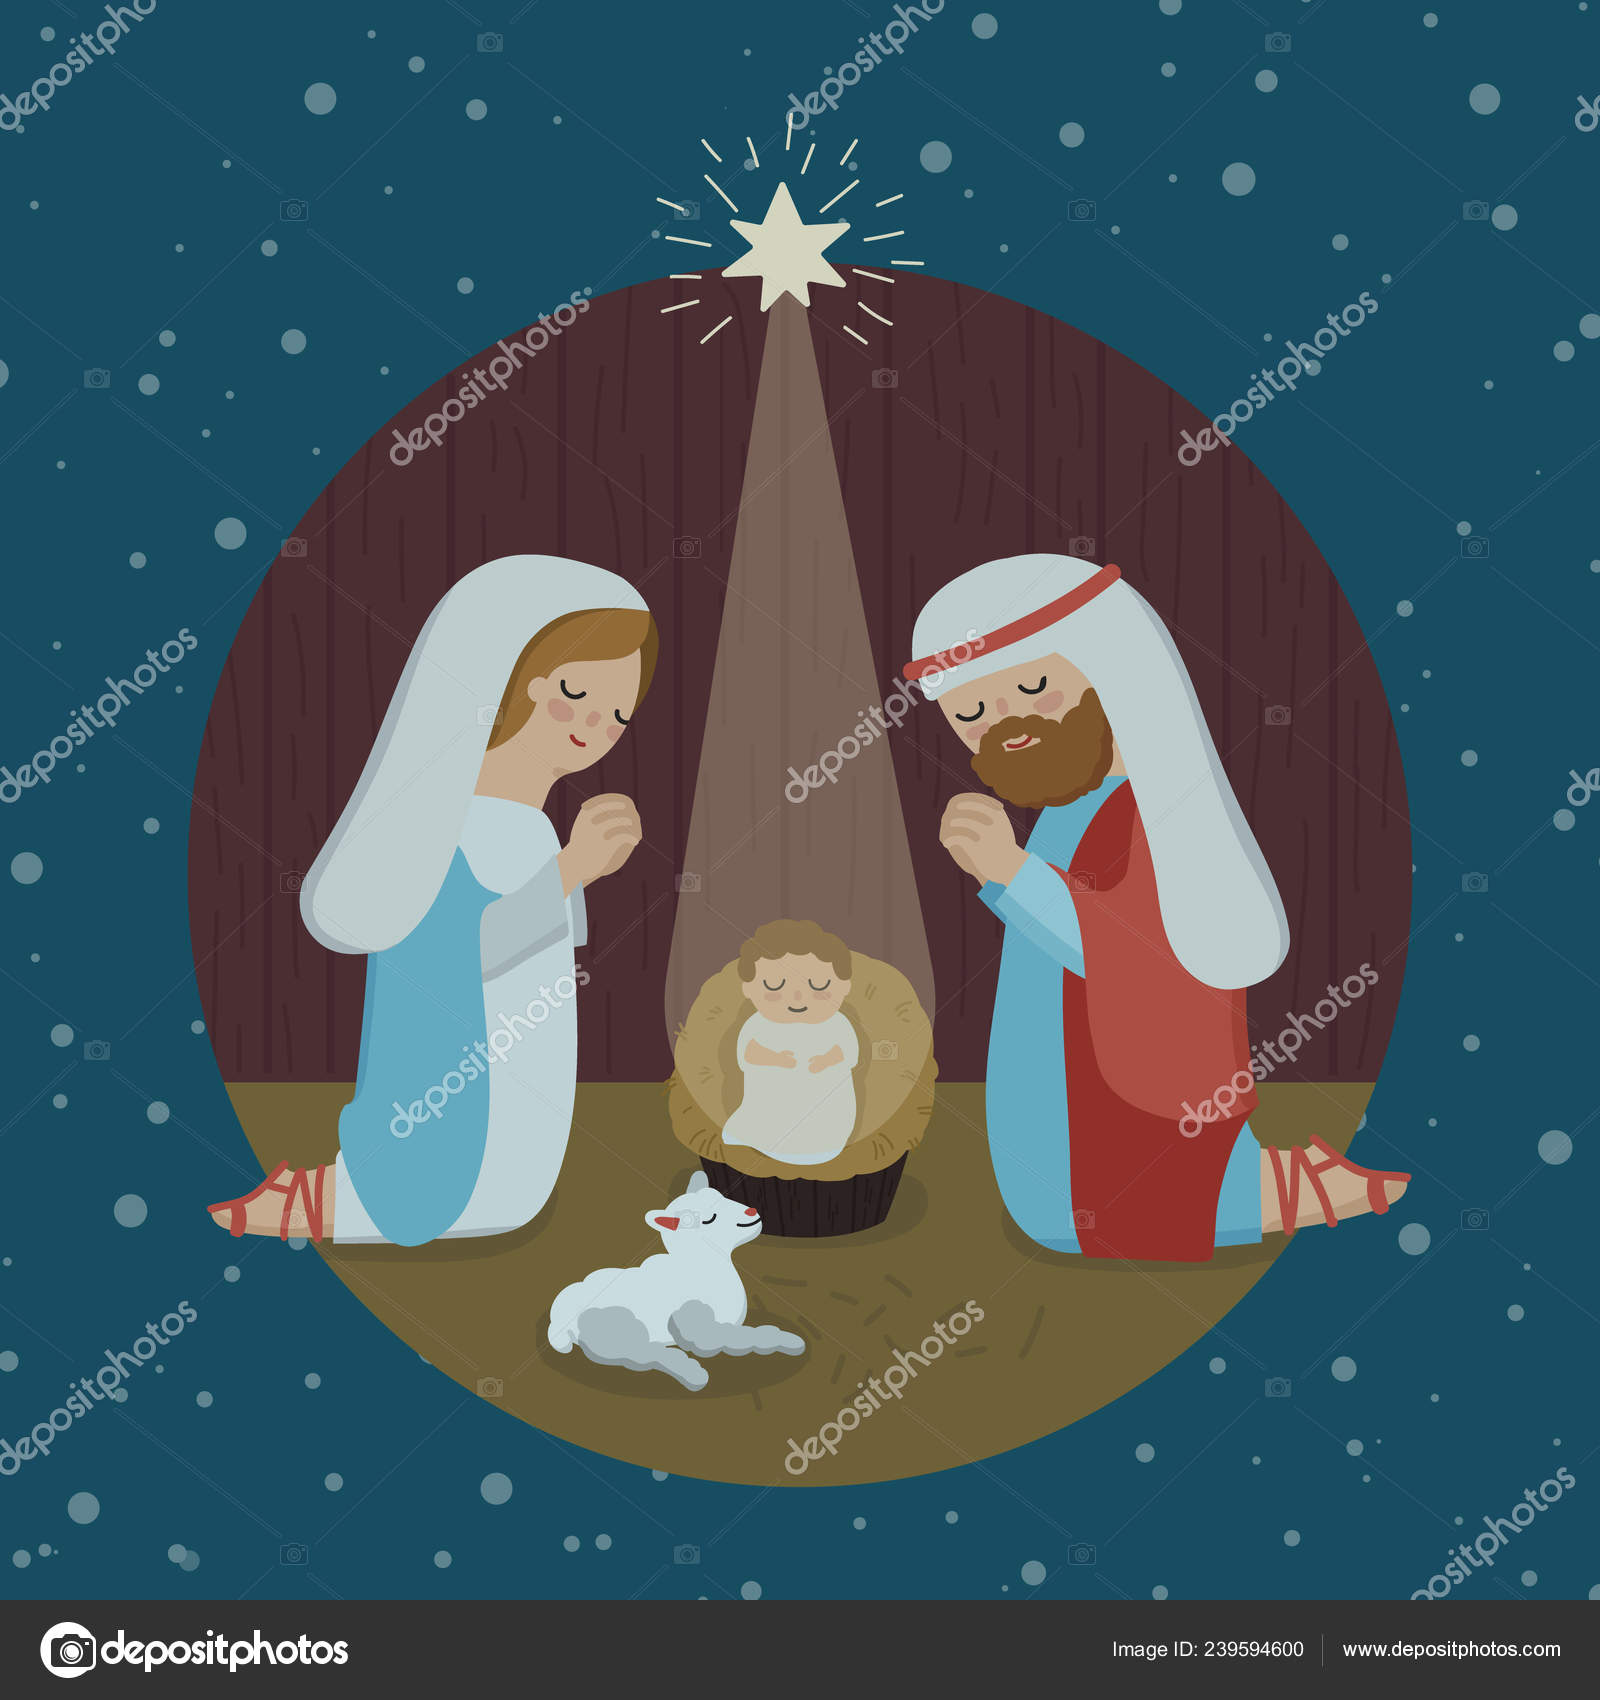 Religious Merry Christmas Images.Merry Christmas Religious Greeting Son God Born Spiritual